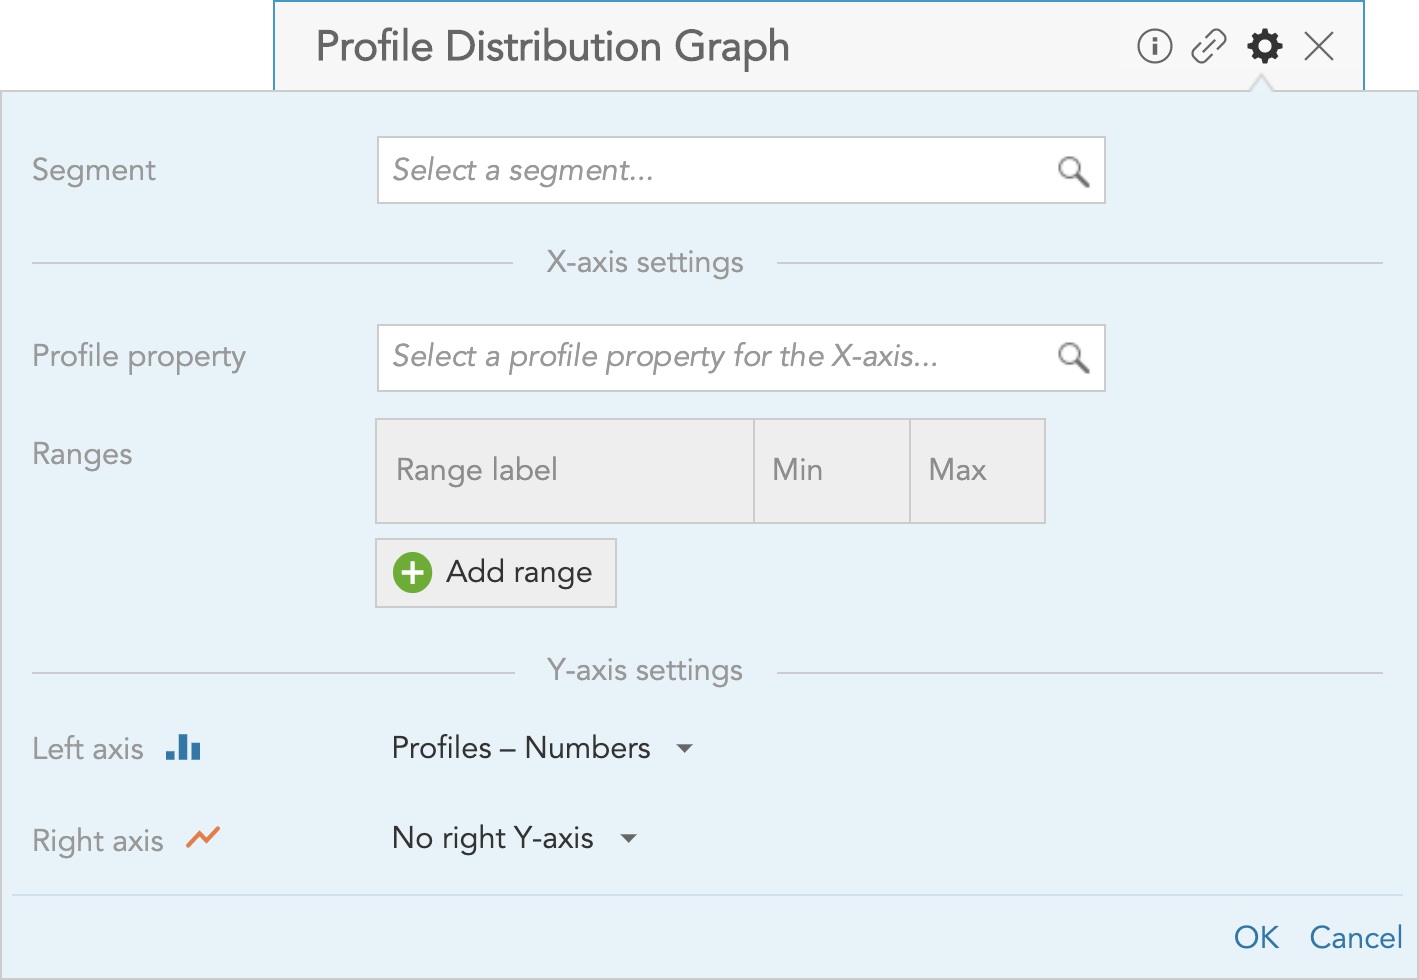 How to set up the Profile Distribution Graph insight in BlueConic to measure and visualize customer order and transaction data